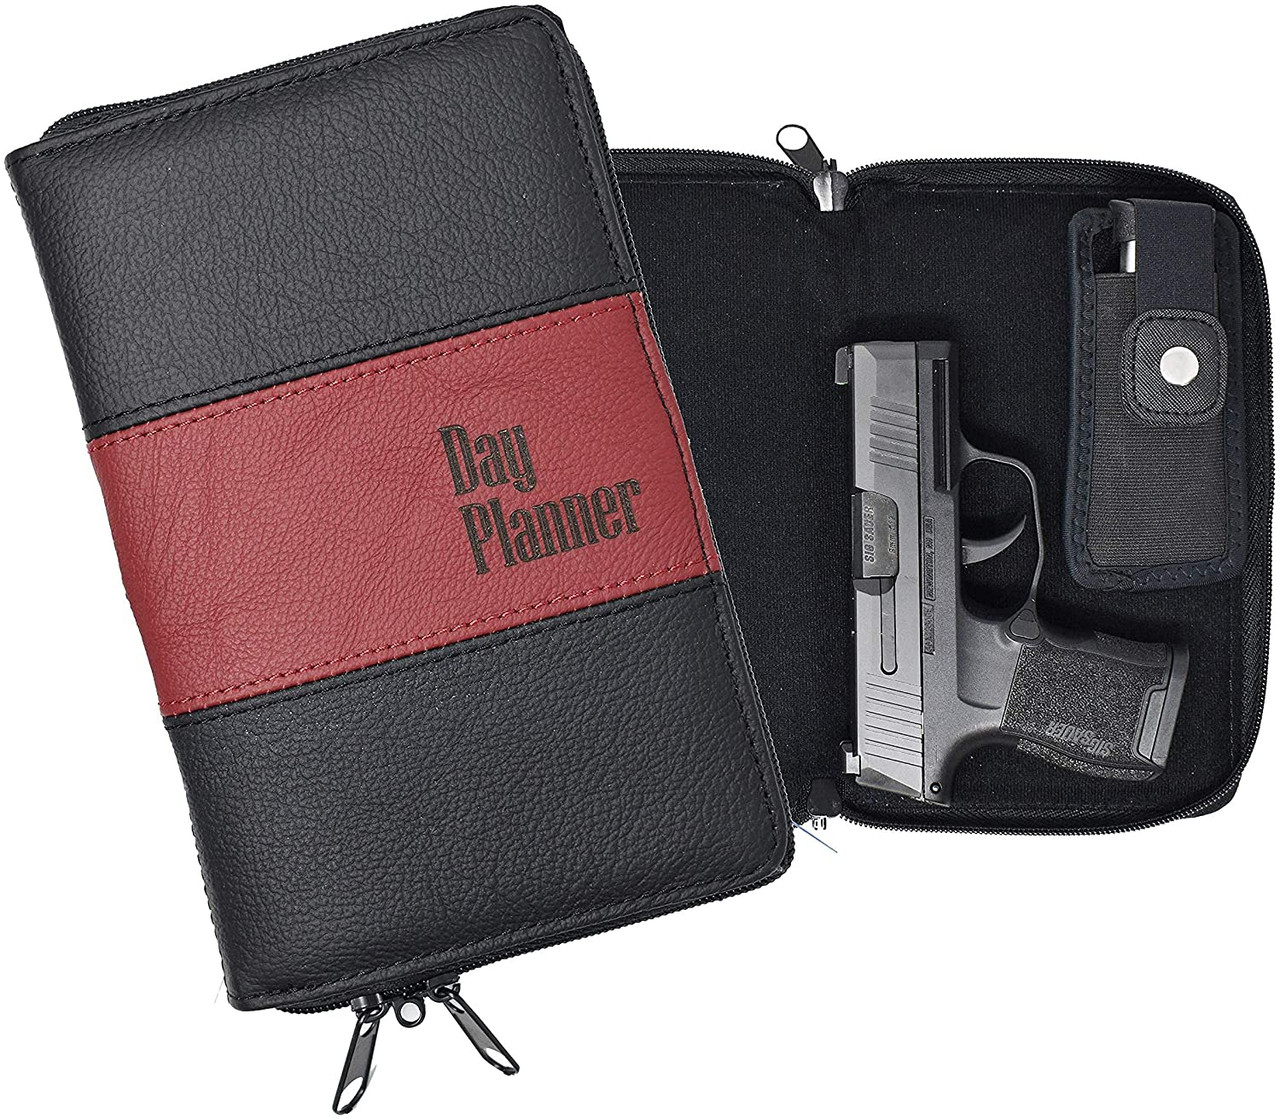 Garrison Grip Quality Leather CCW Day Planner Gun Case for Compact and Subcompact Guns (GTSN) BK